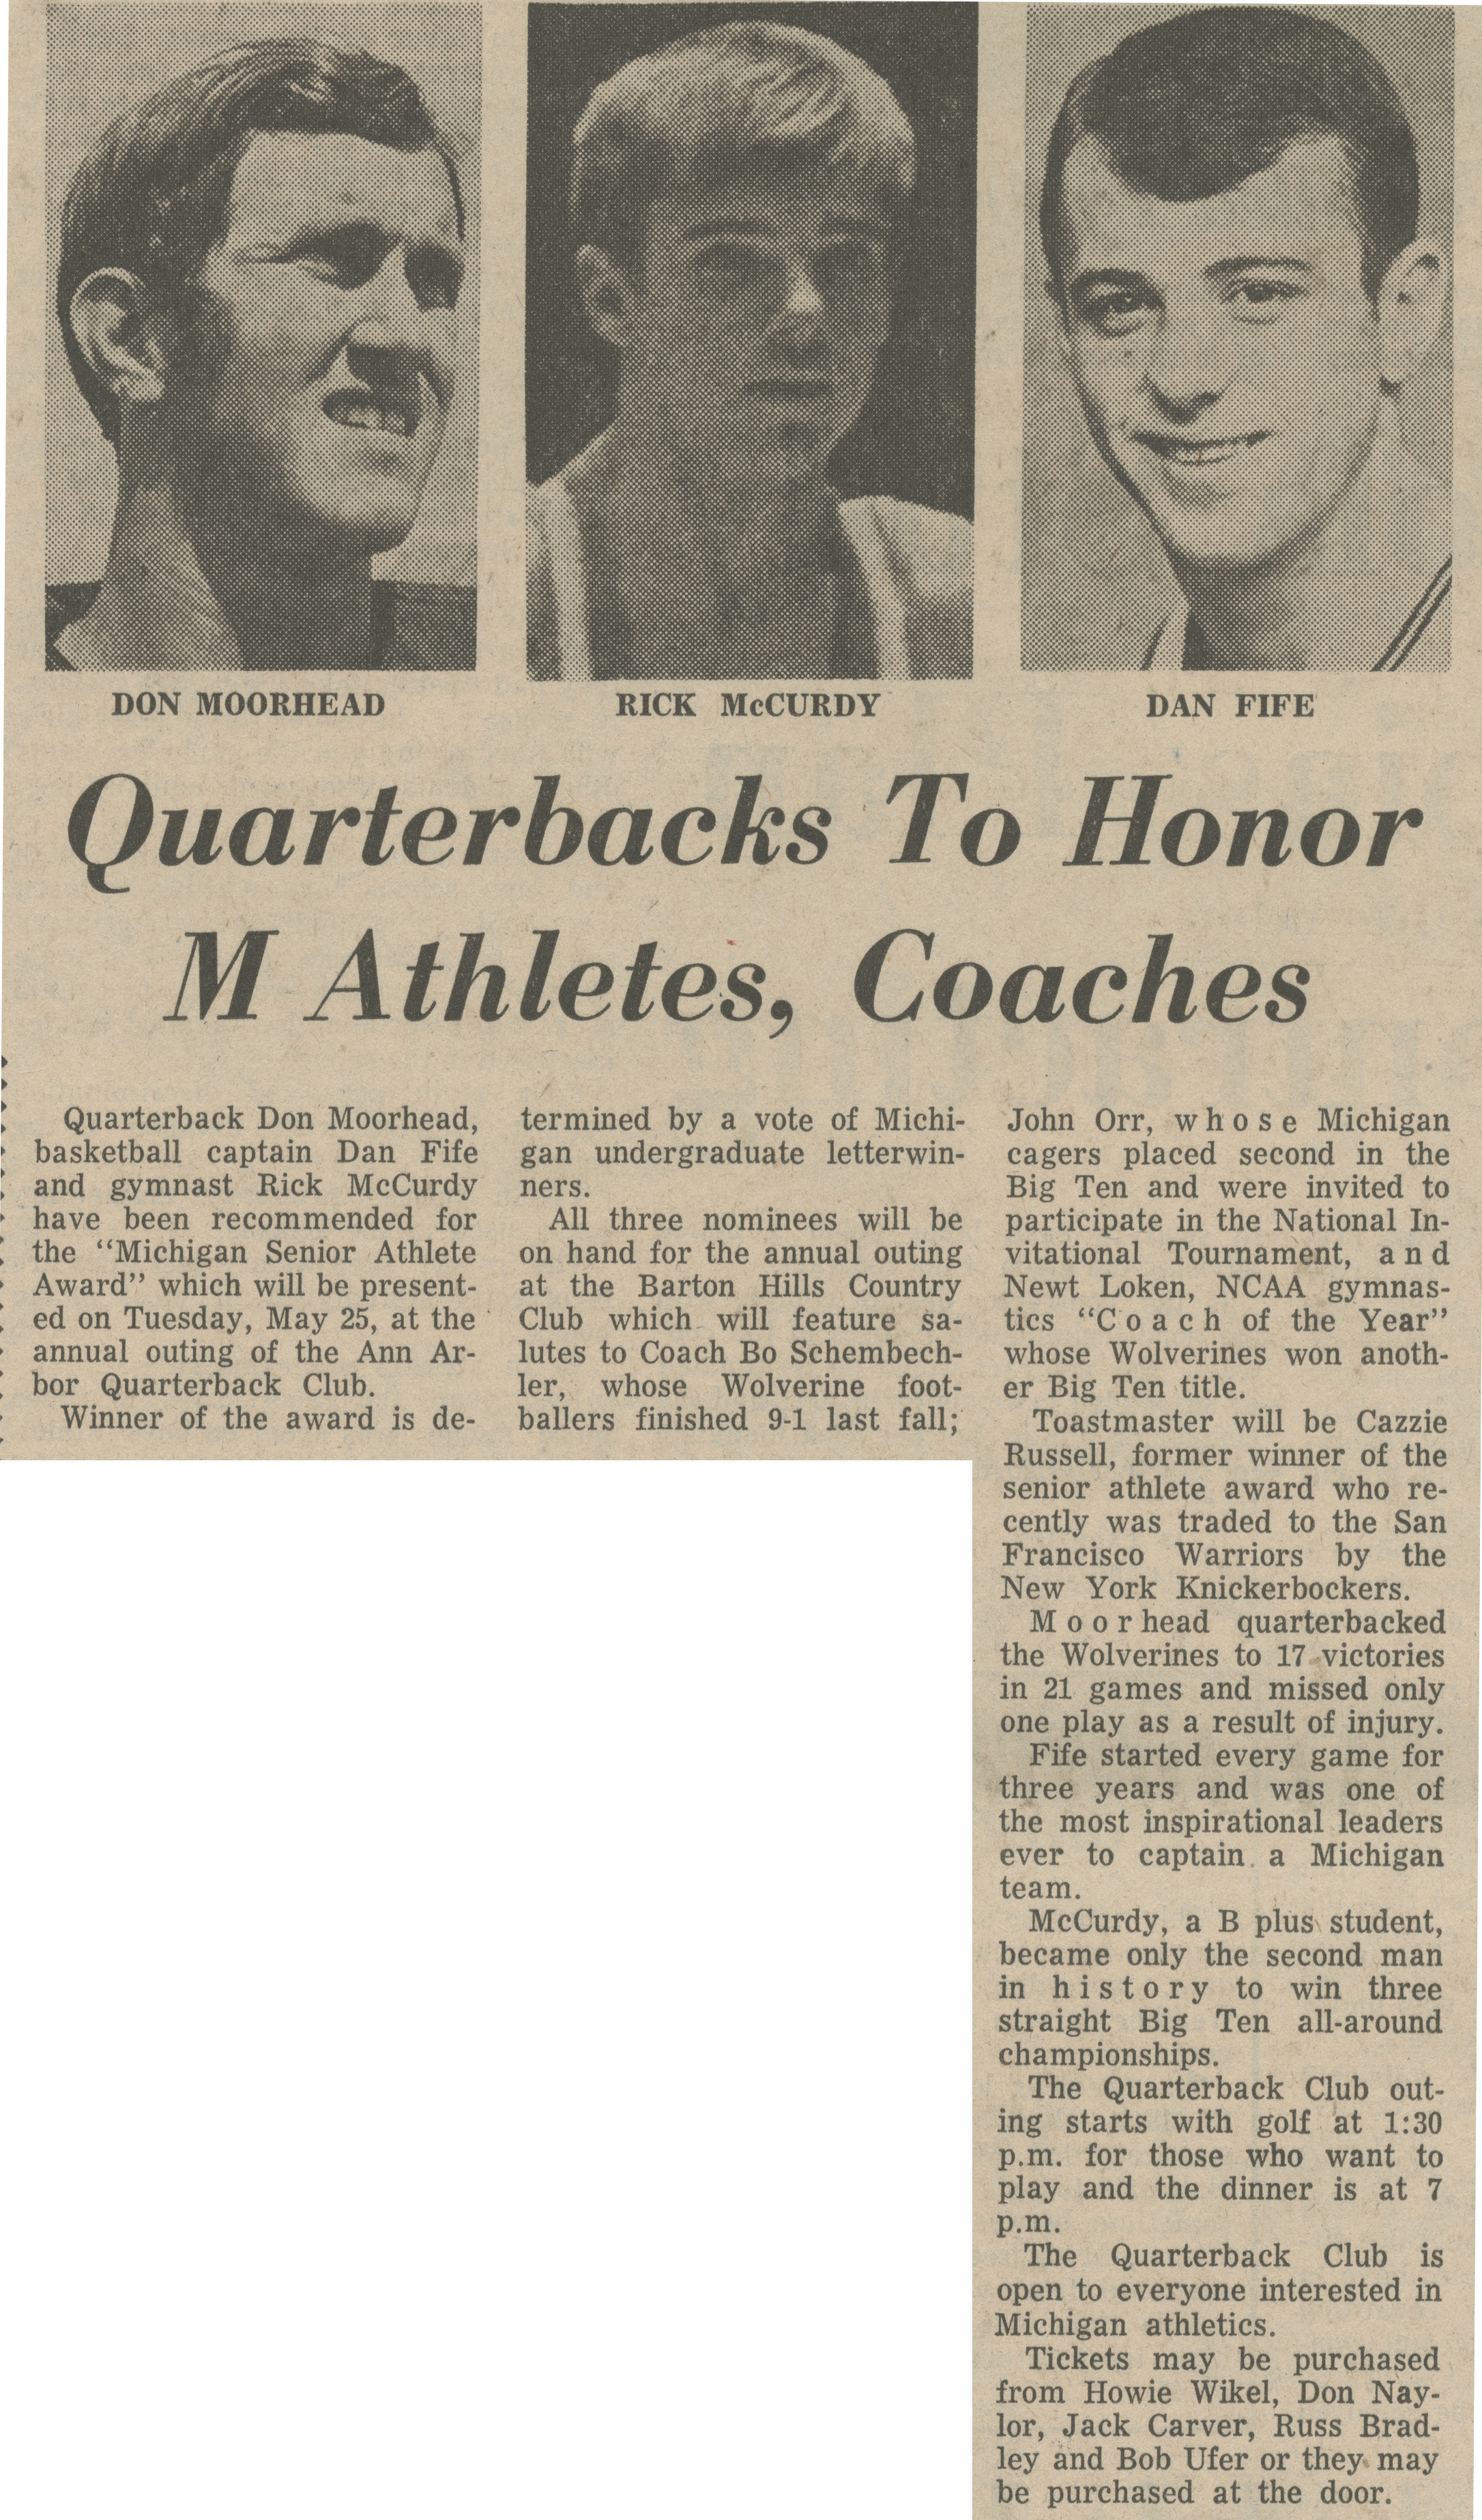 Quarterbacks To Honor M Athletes, Coaches image